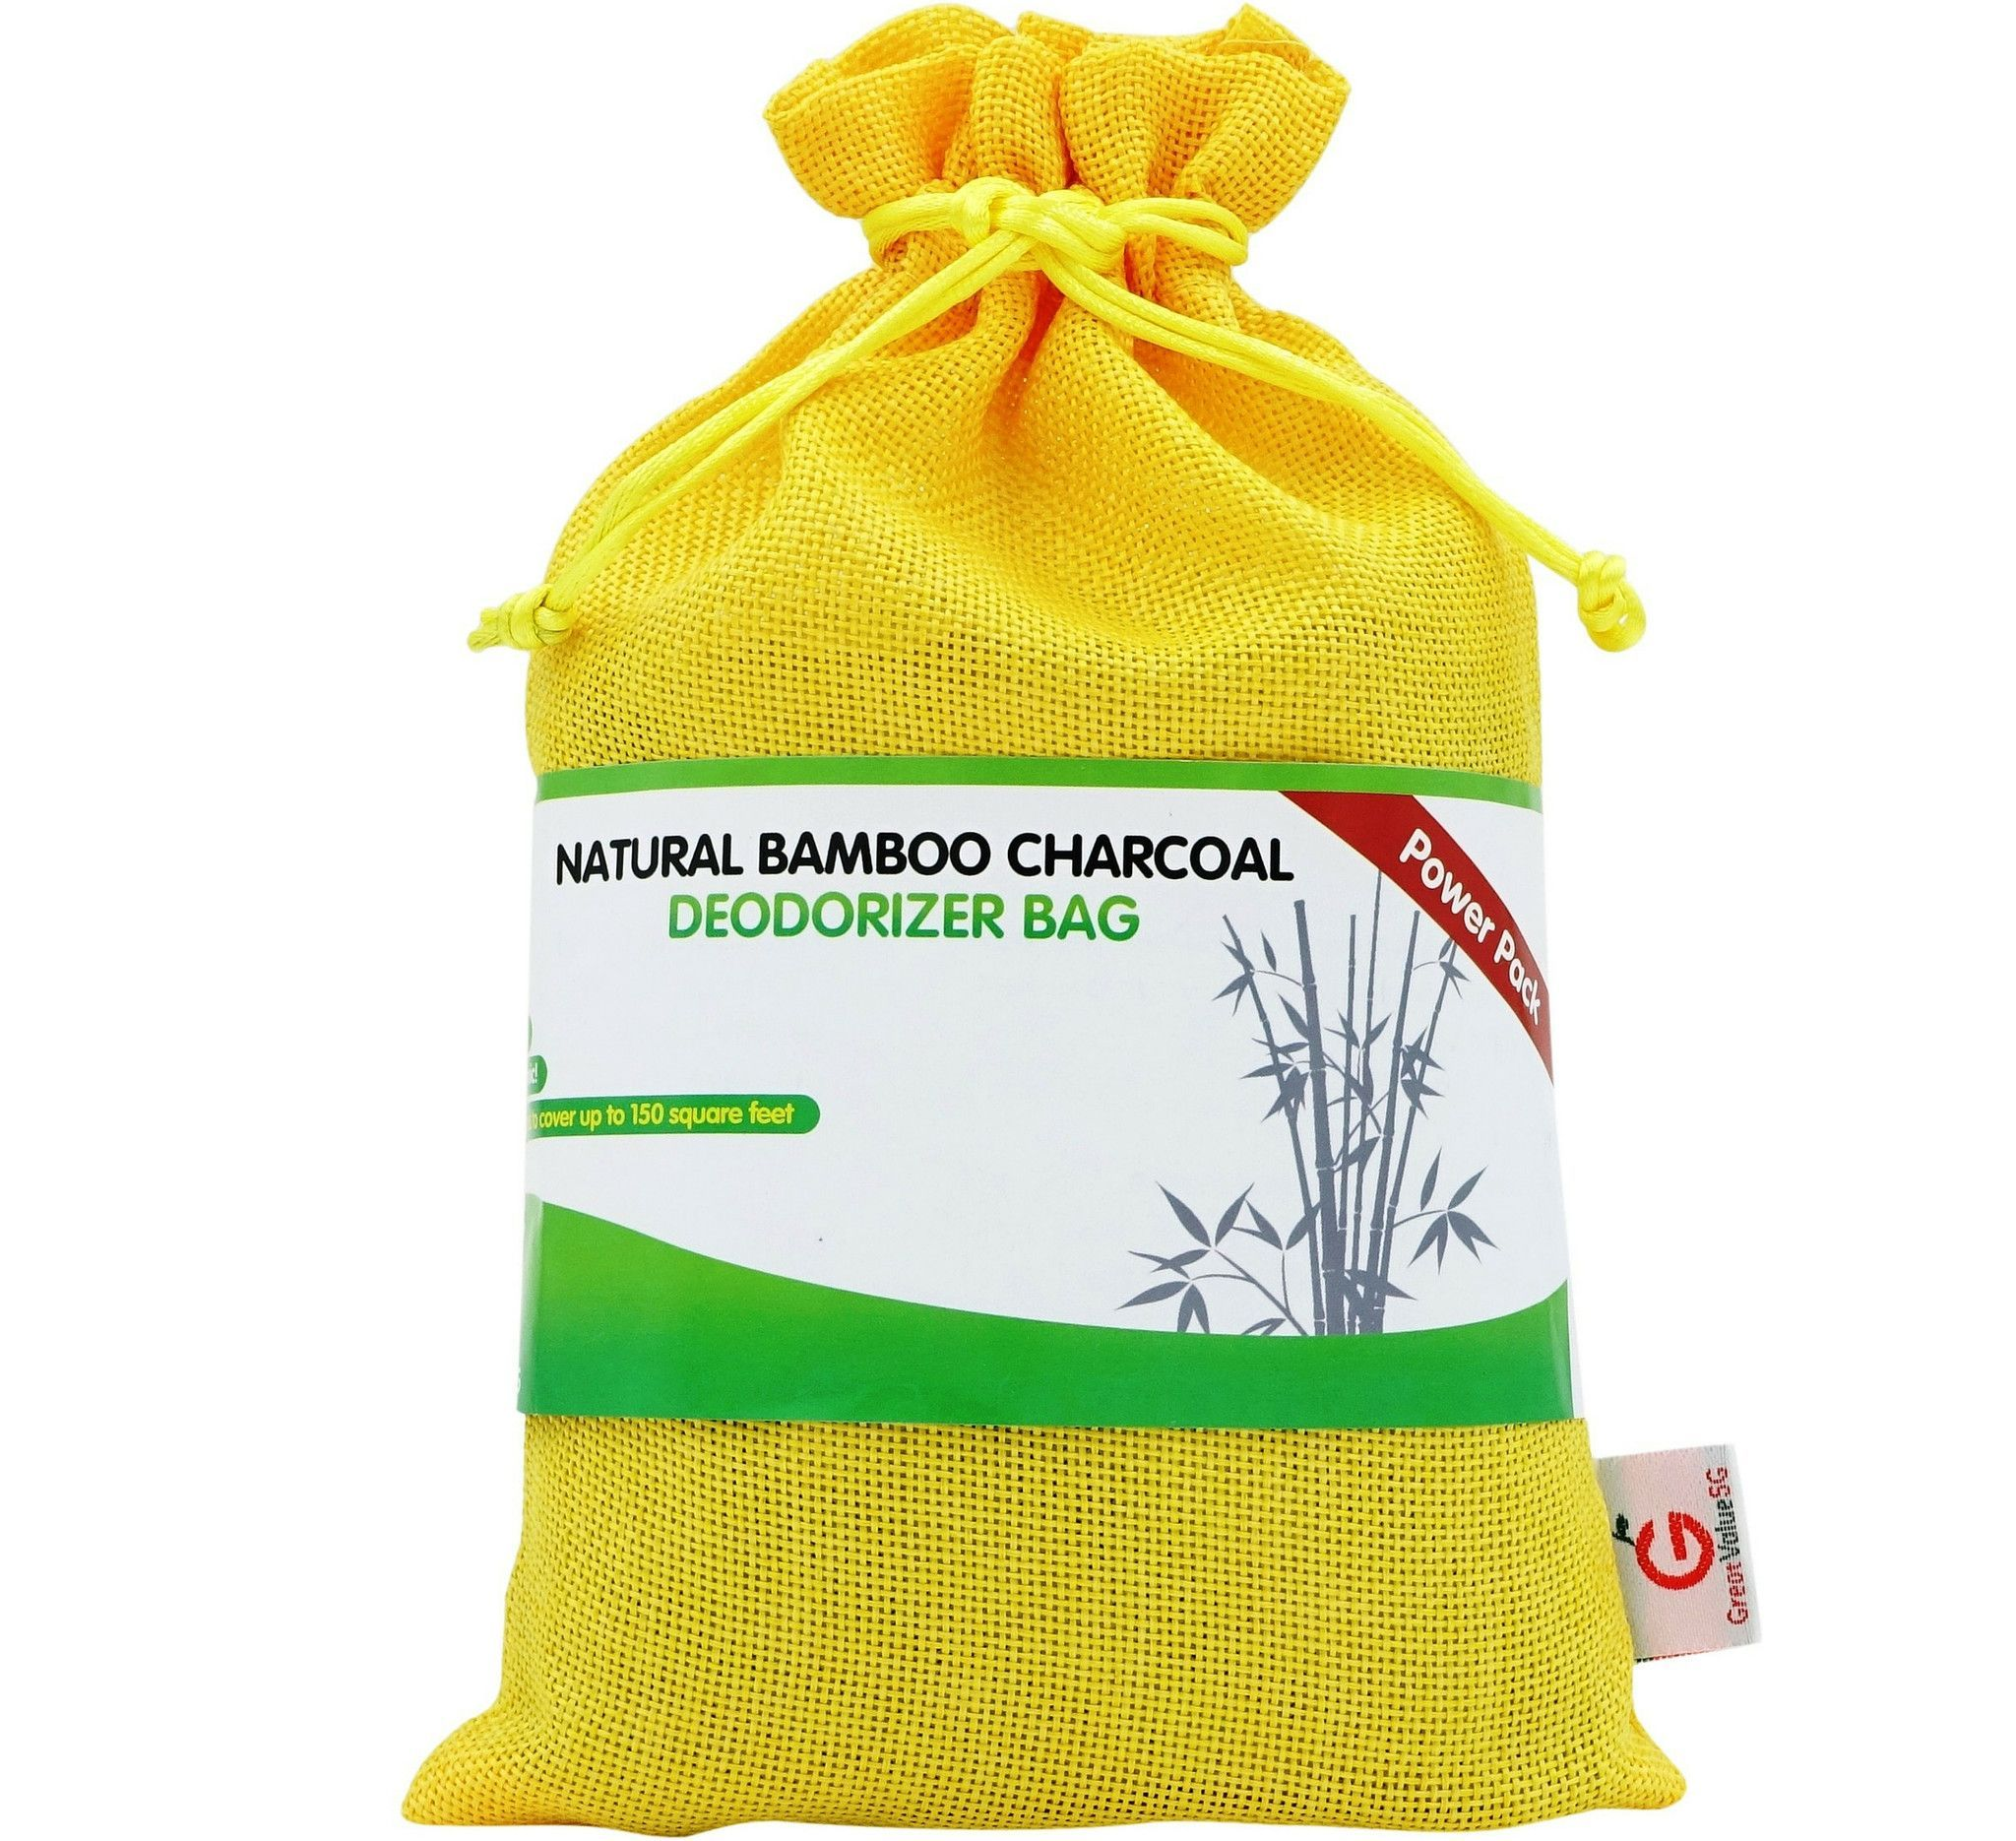 Bamboo Charcoal Deodorizer Power Pack Perfect Car Air Fresheners Delectable Bathroom Air Freshener Inspiration Design